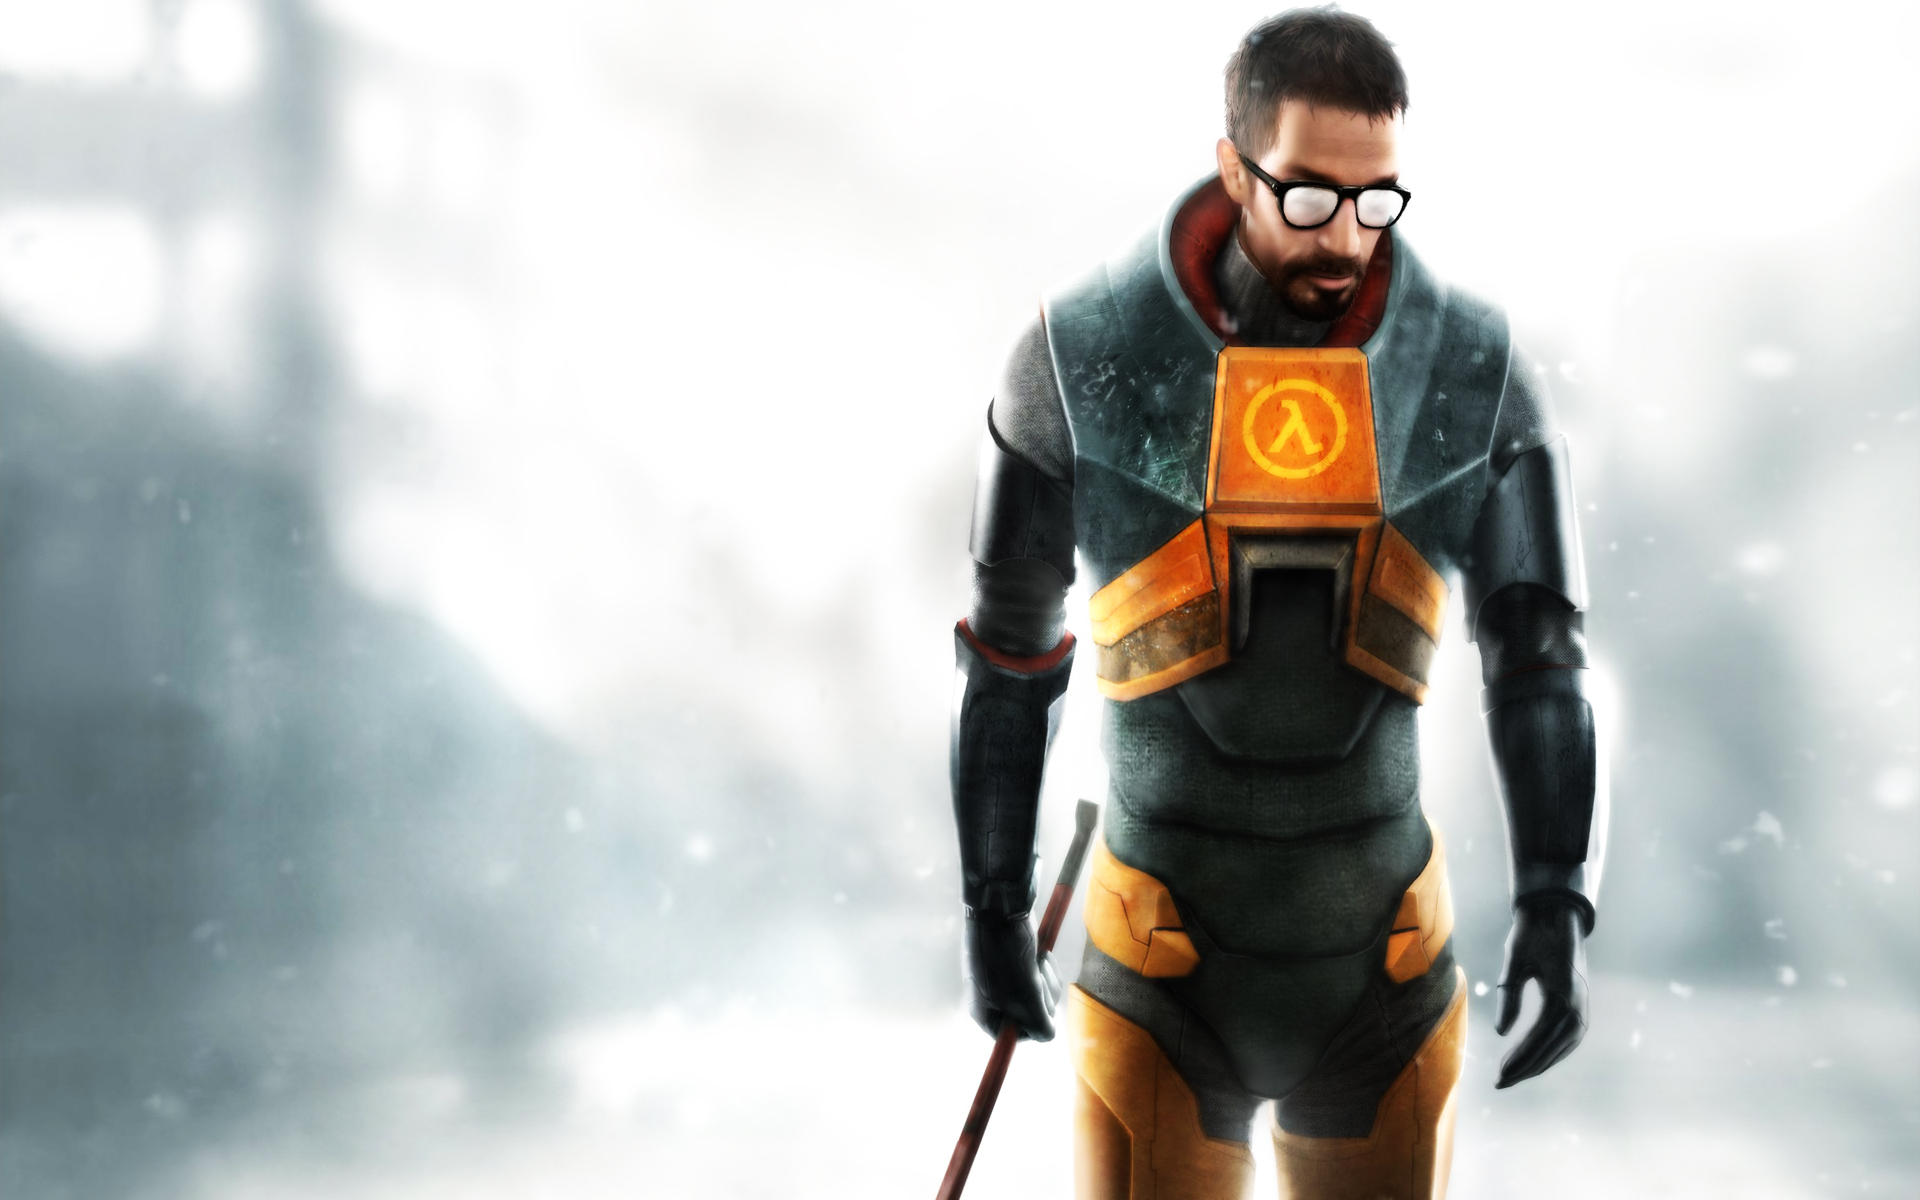 Valve Adds Oculus Rift Support to Half-Life 2, Releases Linux Version